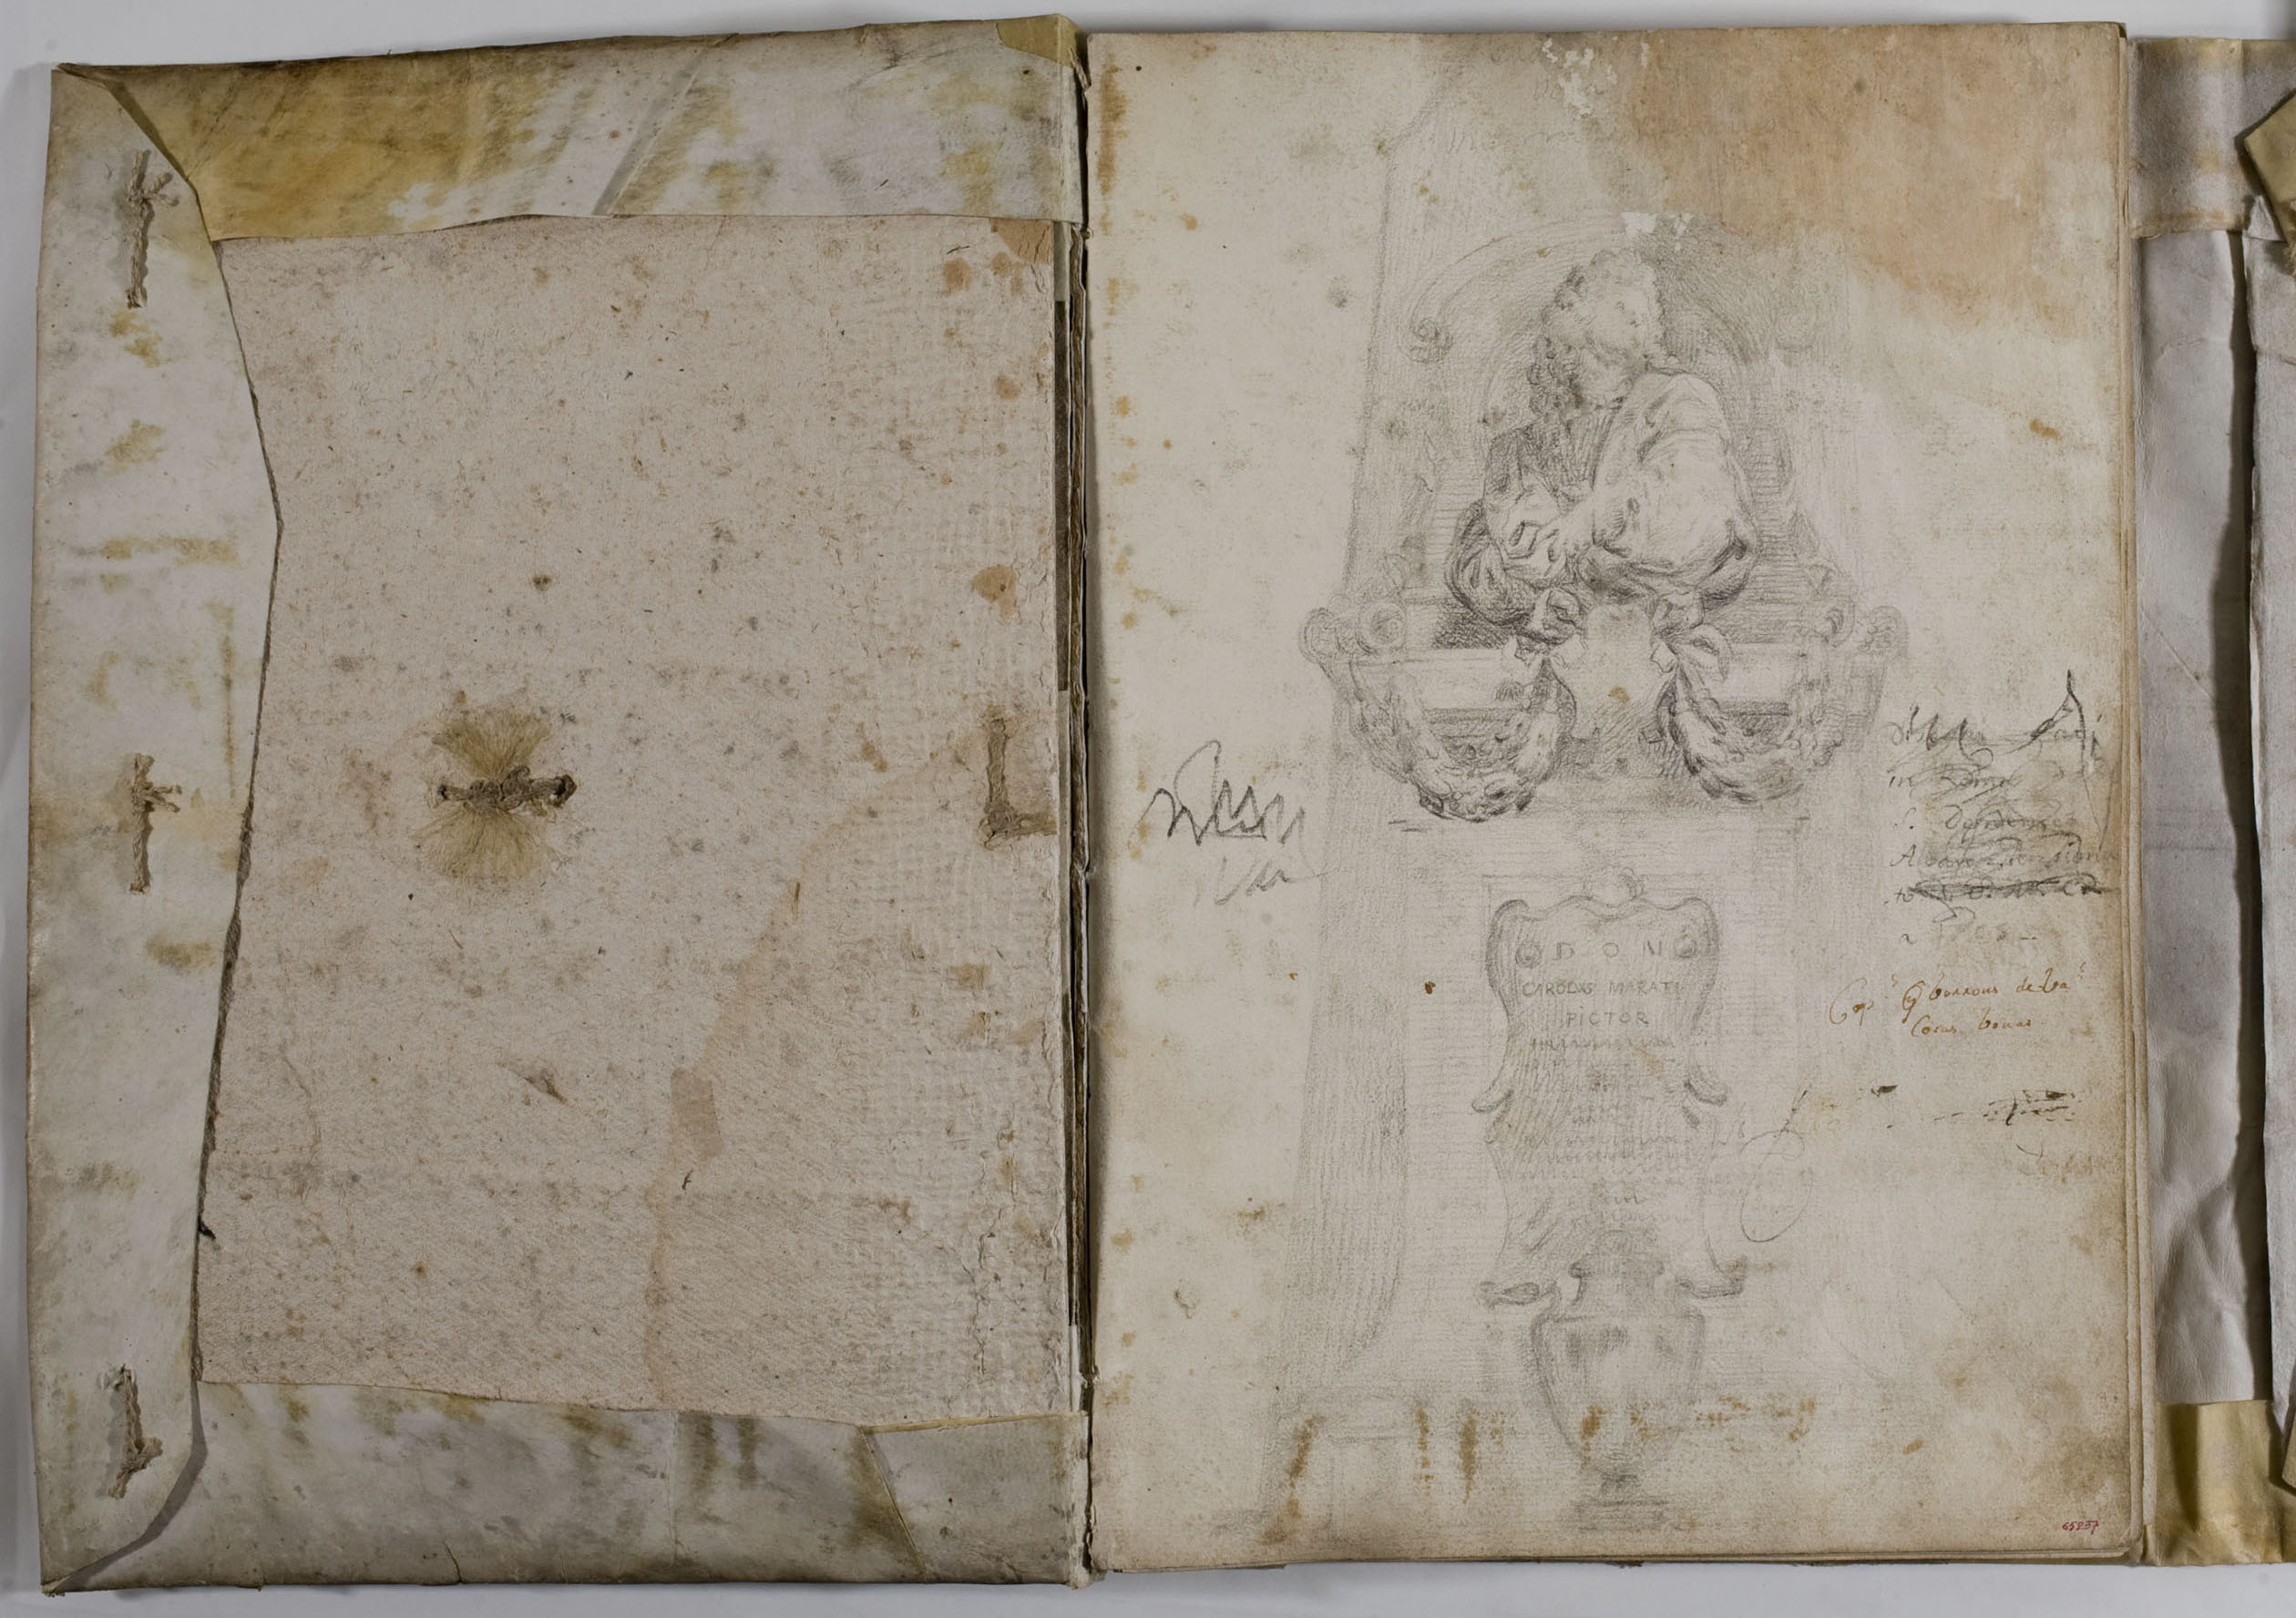 Domingo Álvarez Enciso - Roman album - Circa 1758-1762 or 1773-1789